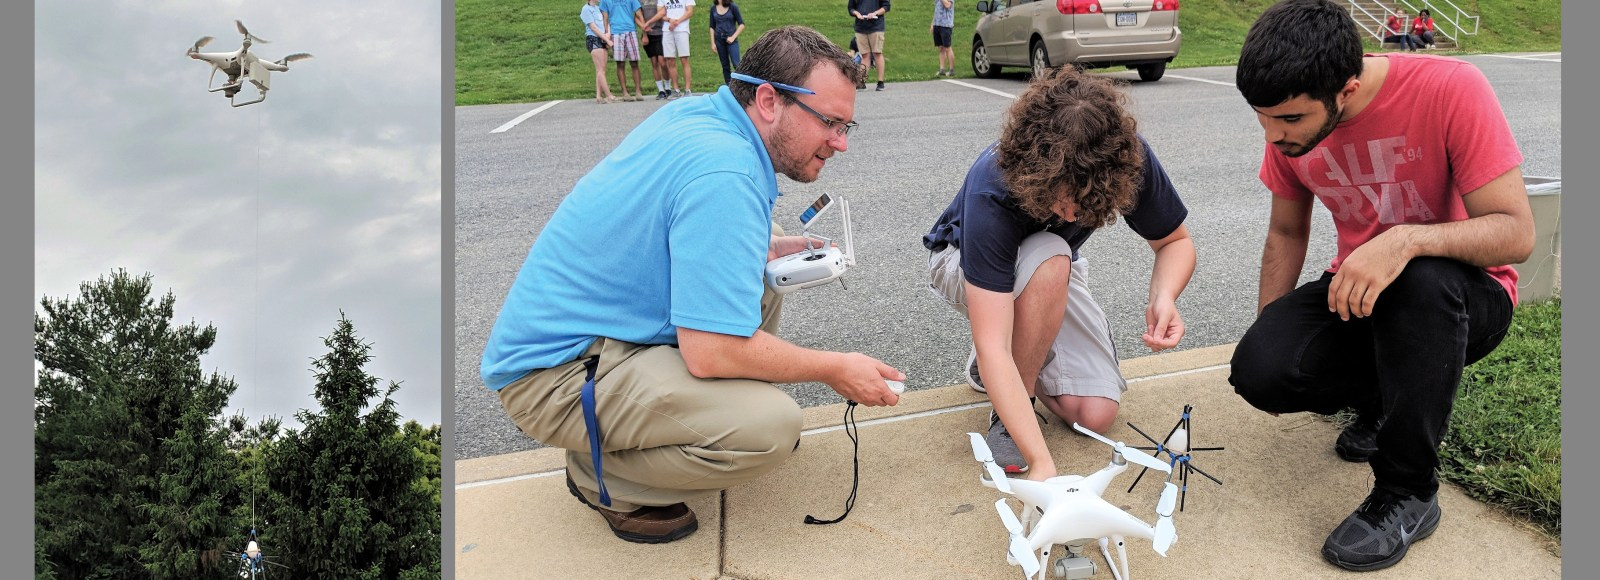 Venture Grants bring drones to Penn Manor HS classrooms